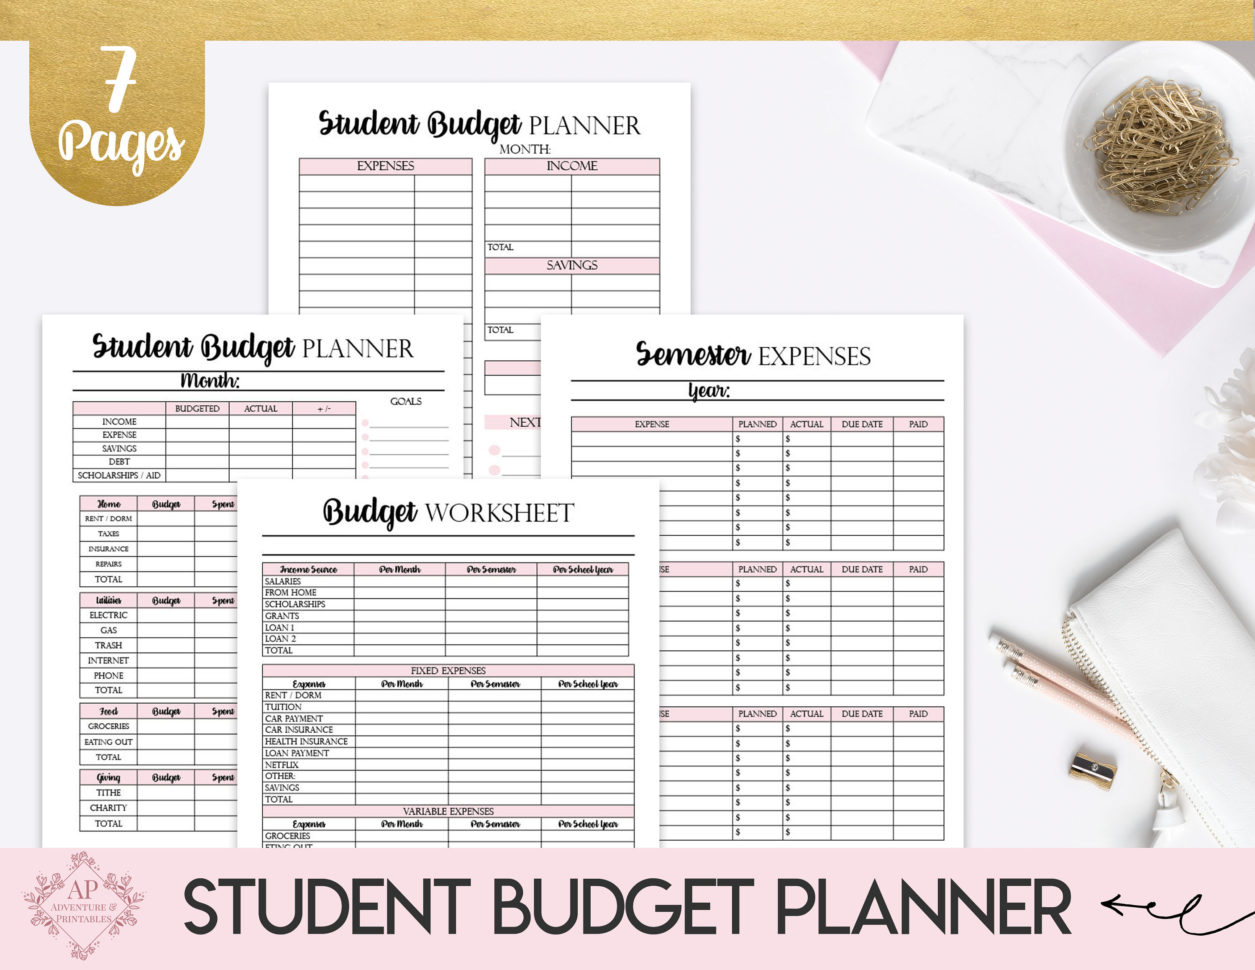 Student Budget Planner Collage Student Budget Worksheet